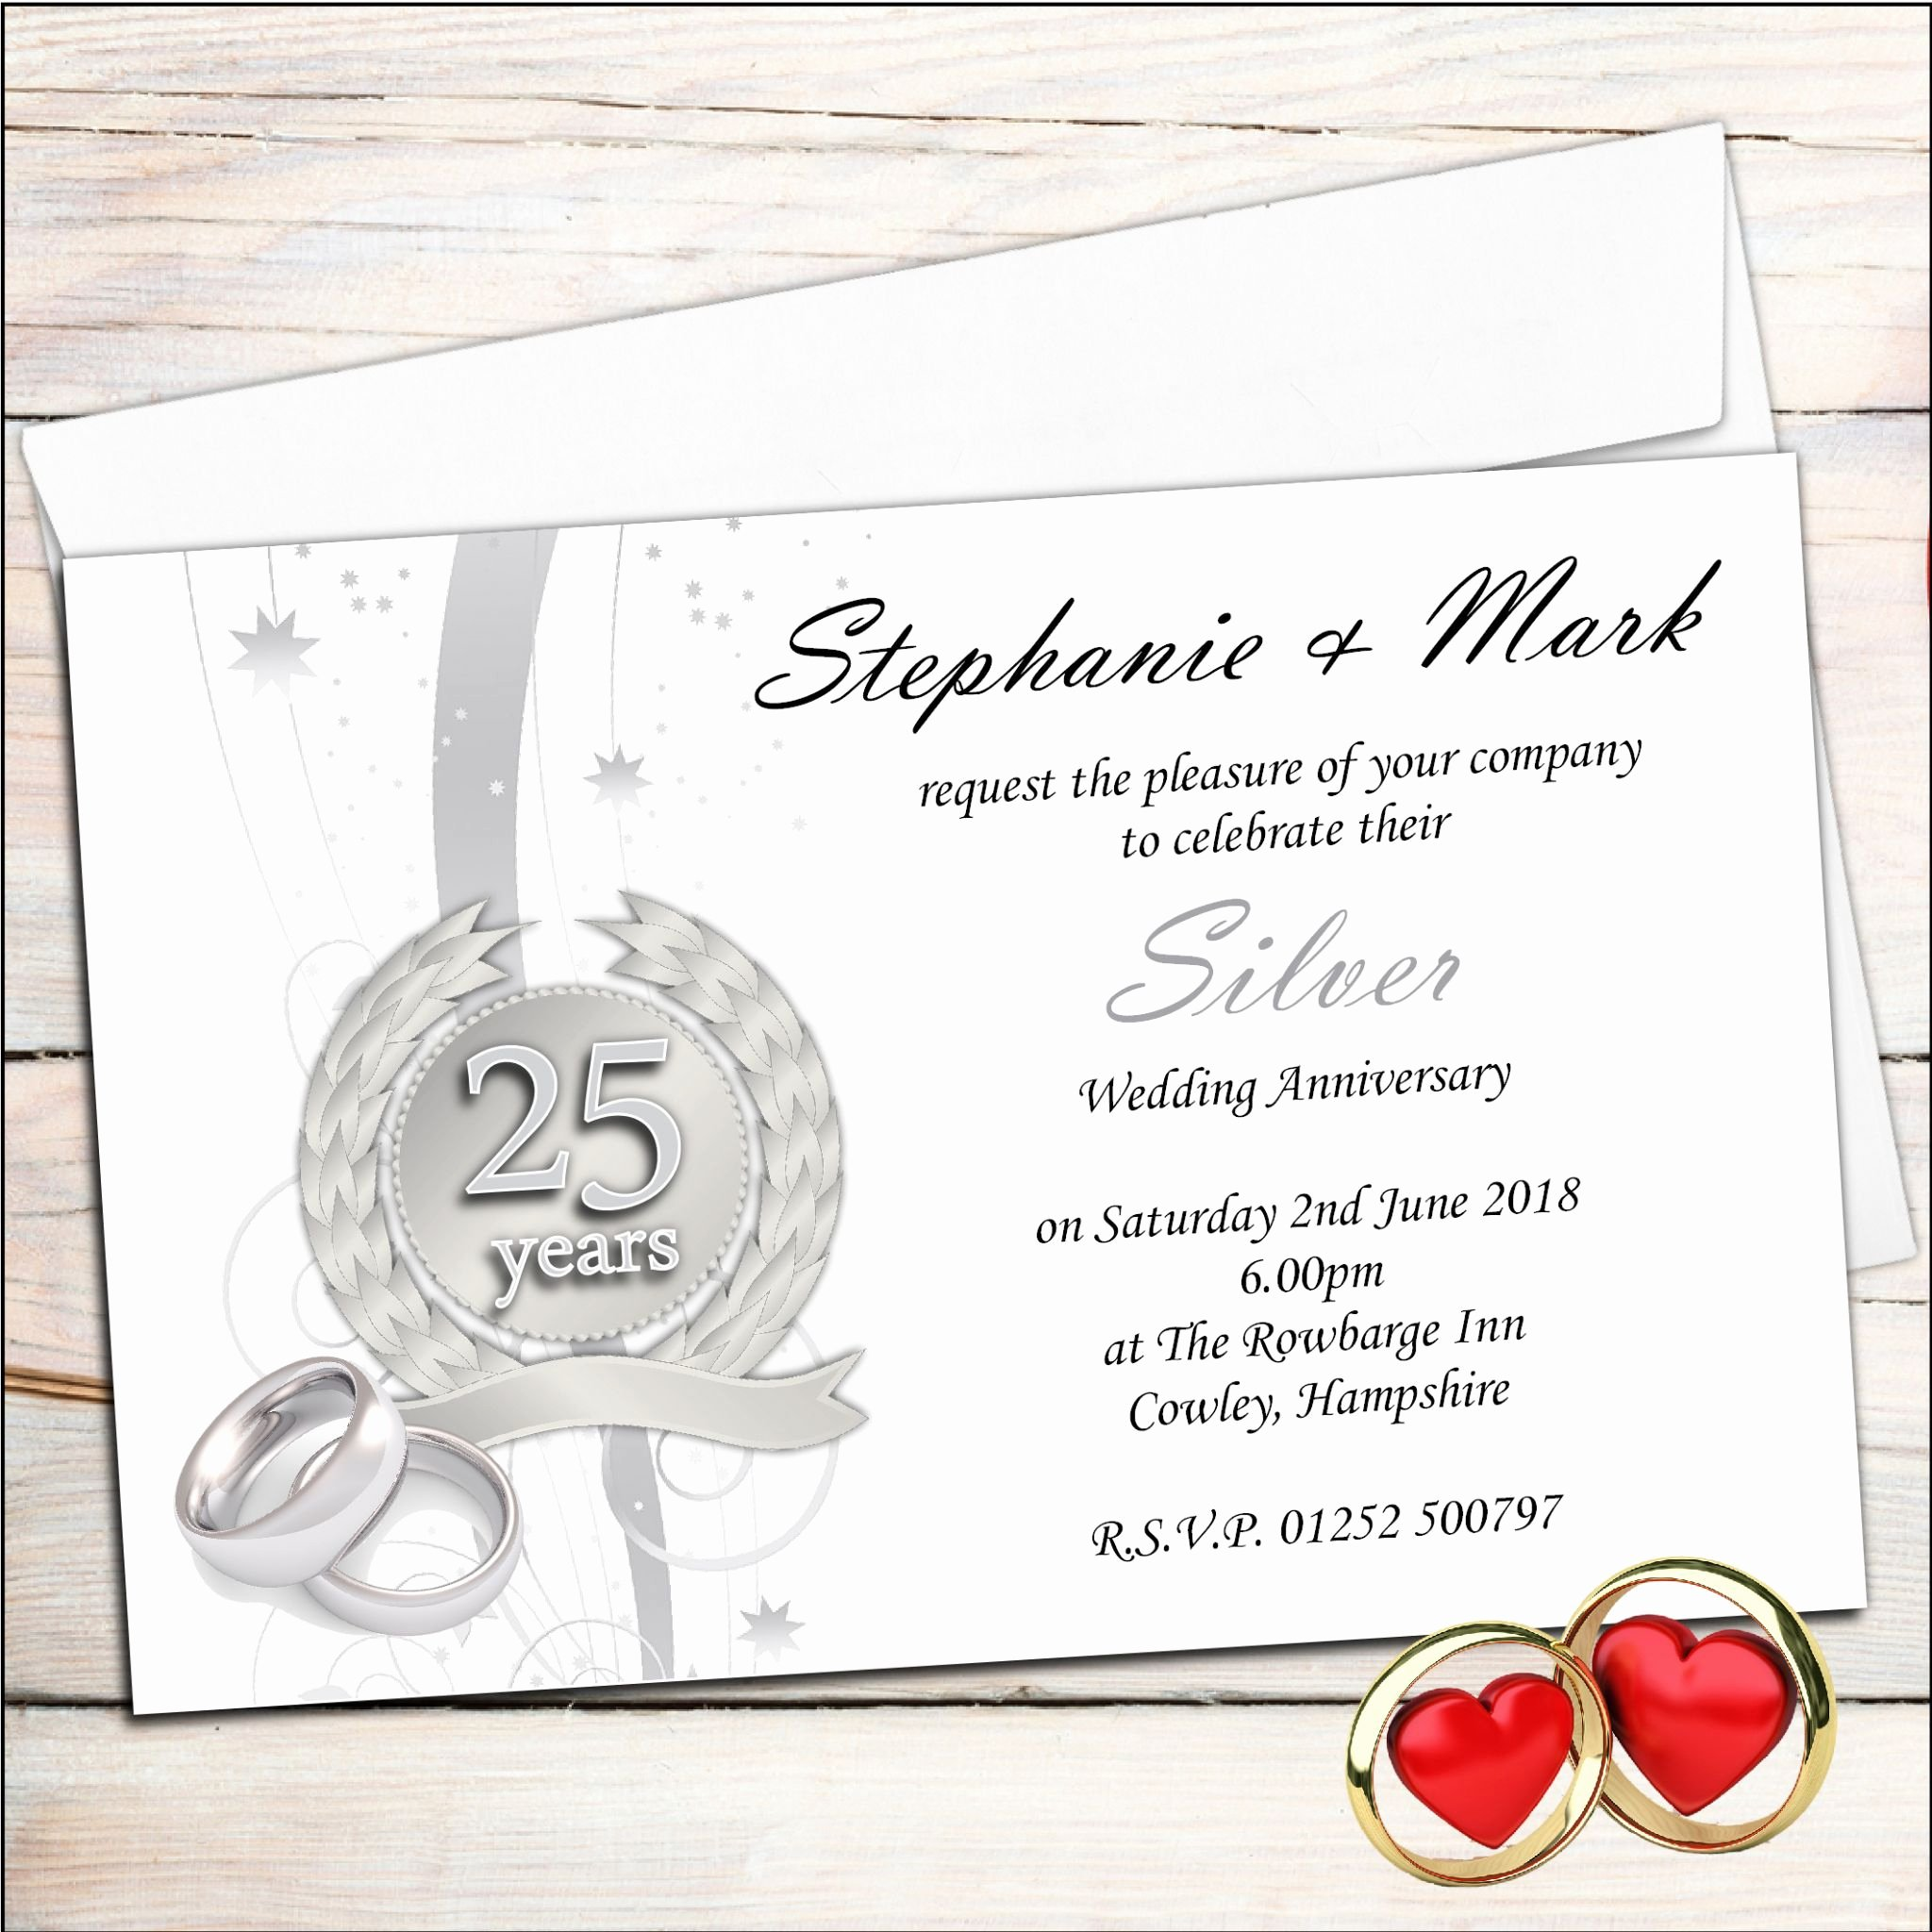 Wedding Anniversary Invite Template Lovely Anniversary Invitations 25th Silver Wedding Anniversary